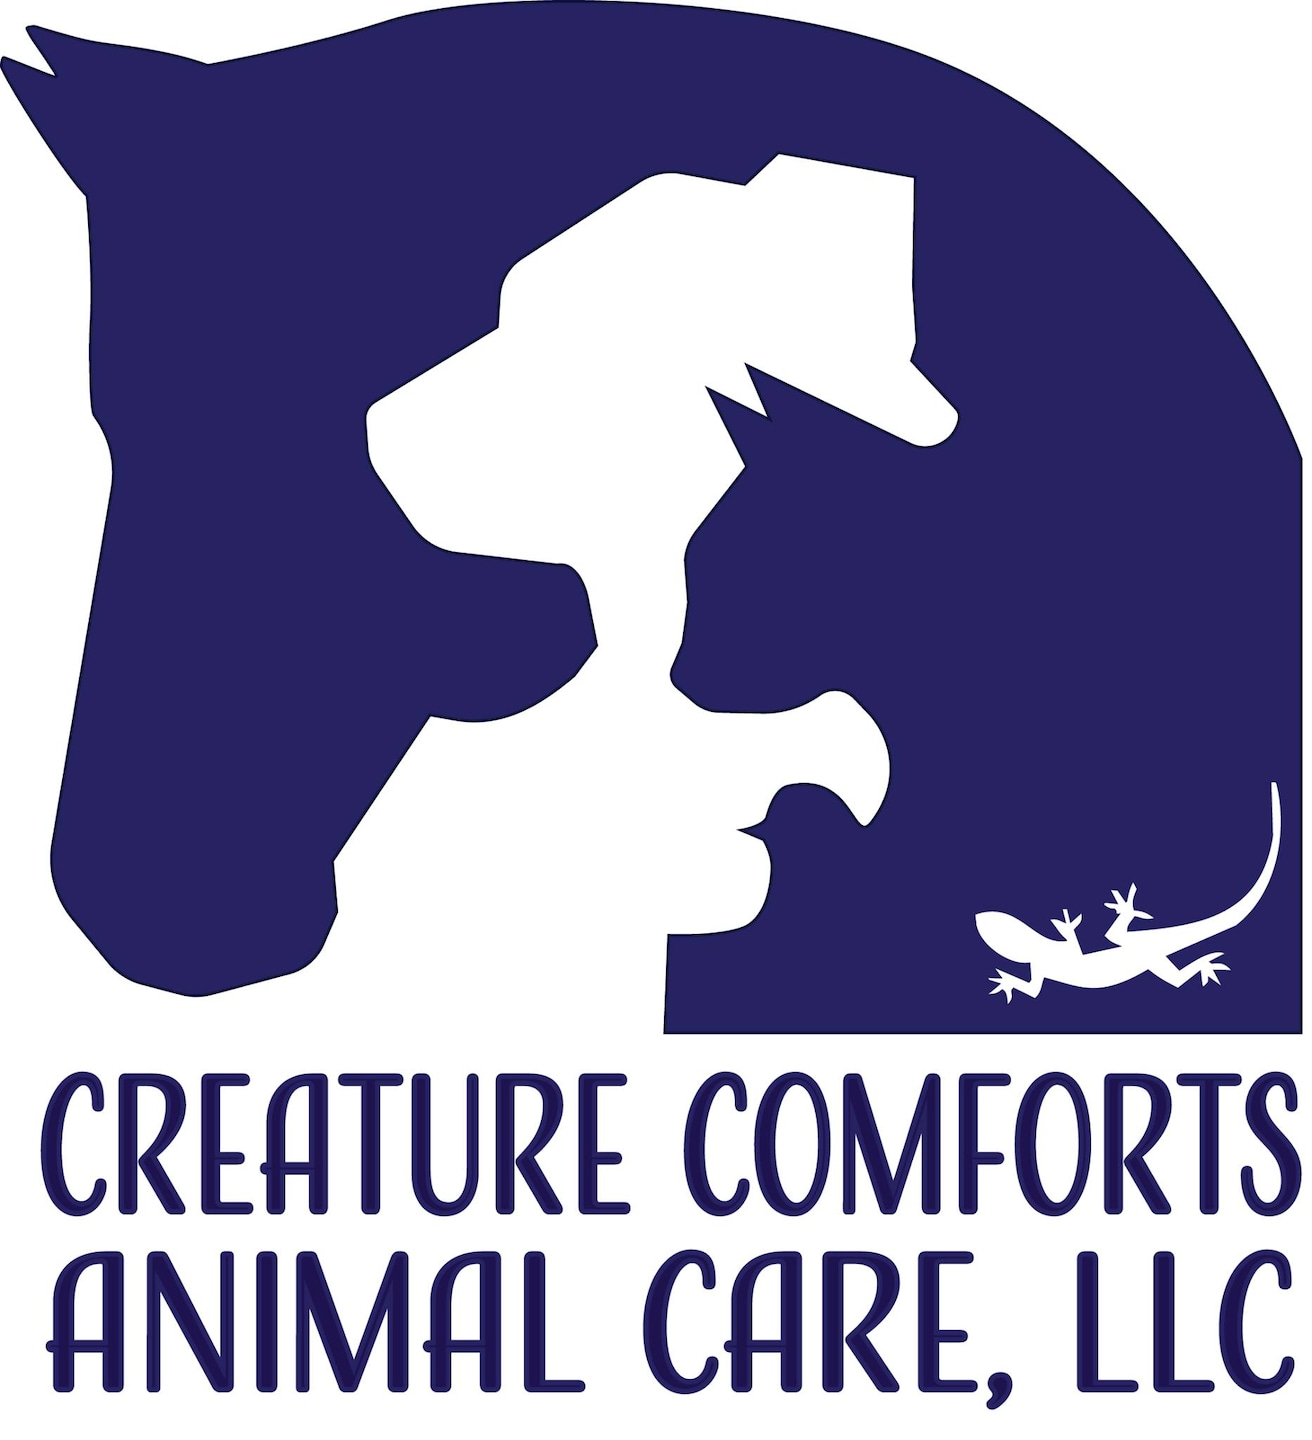 Creature Comforts Animal Care, LLC